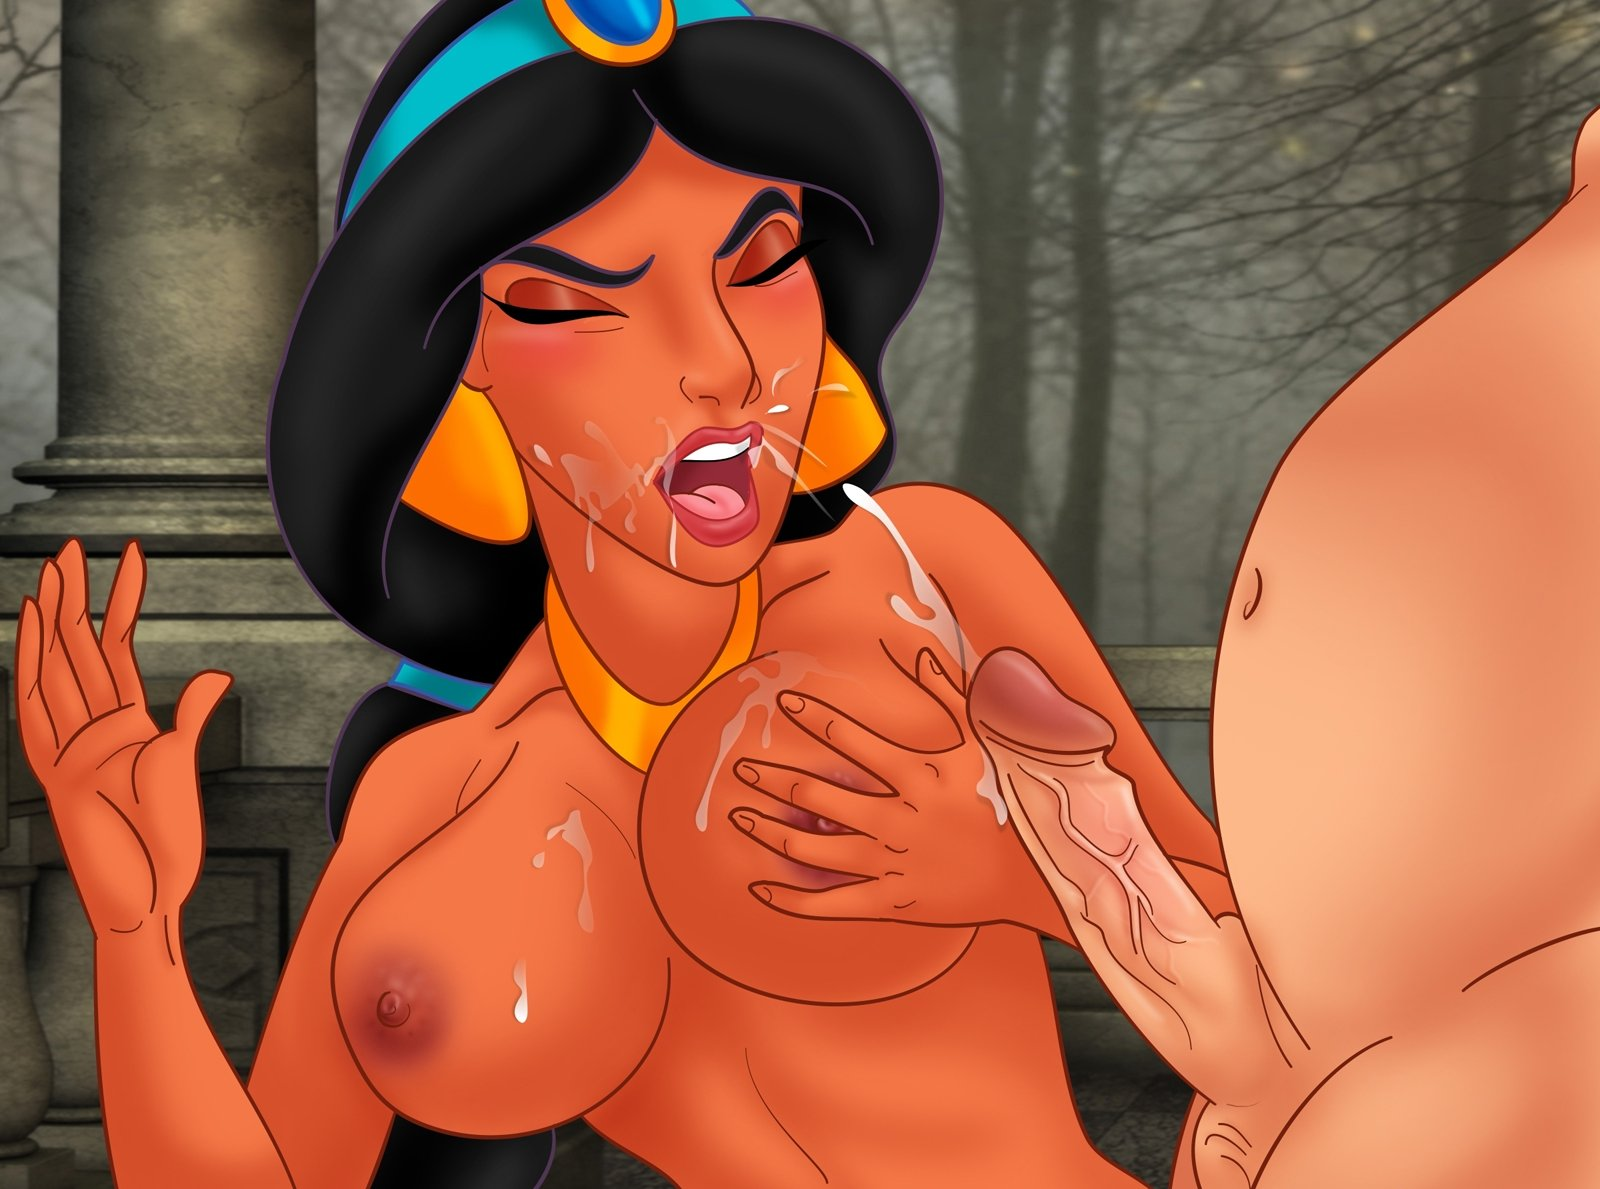 Disney princesses sucking dicks